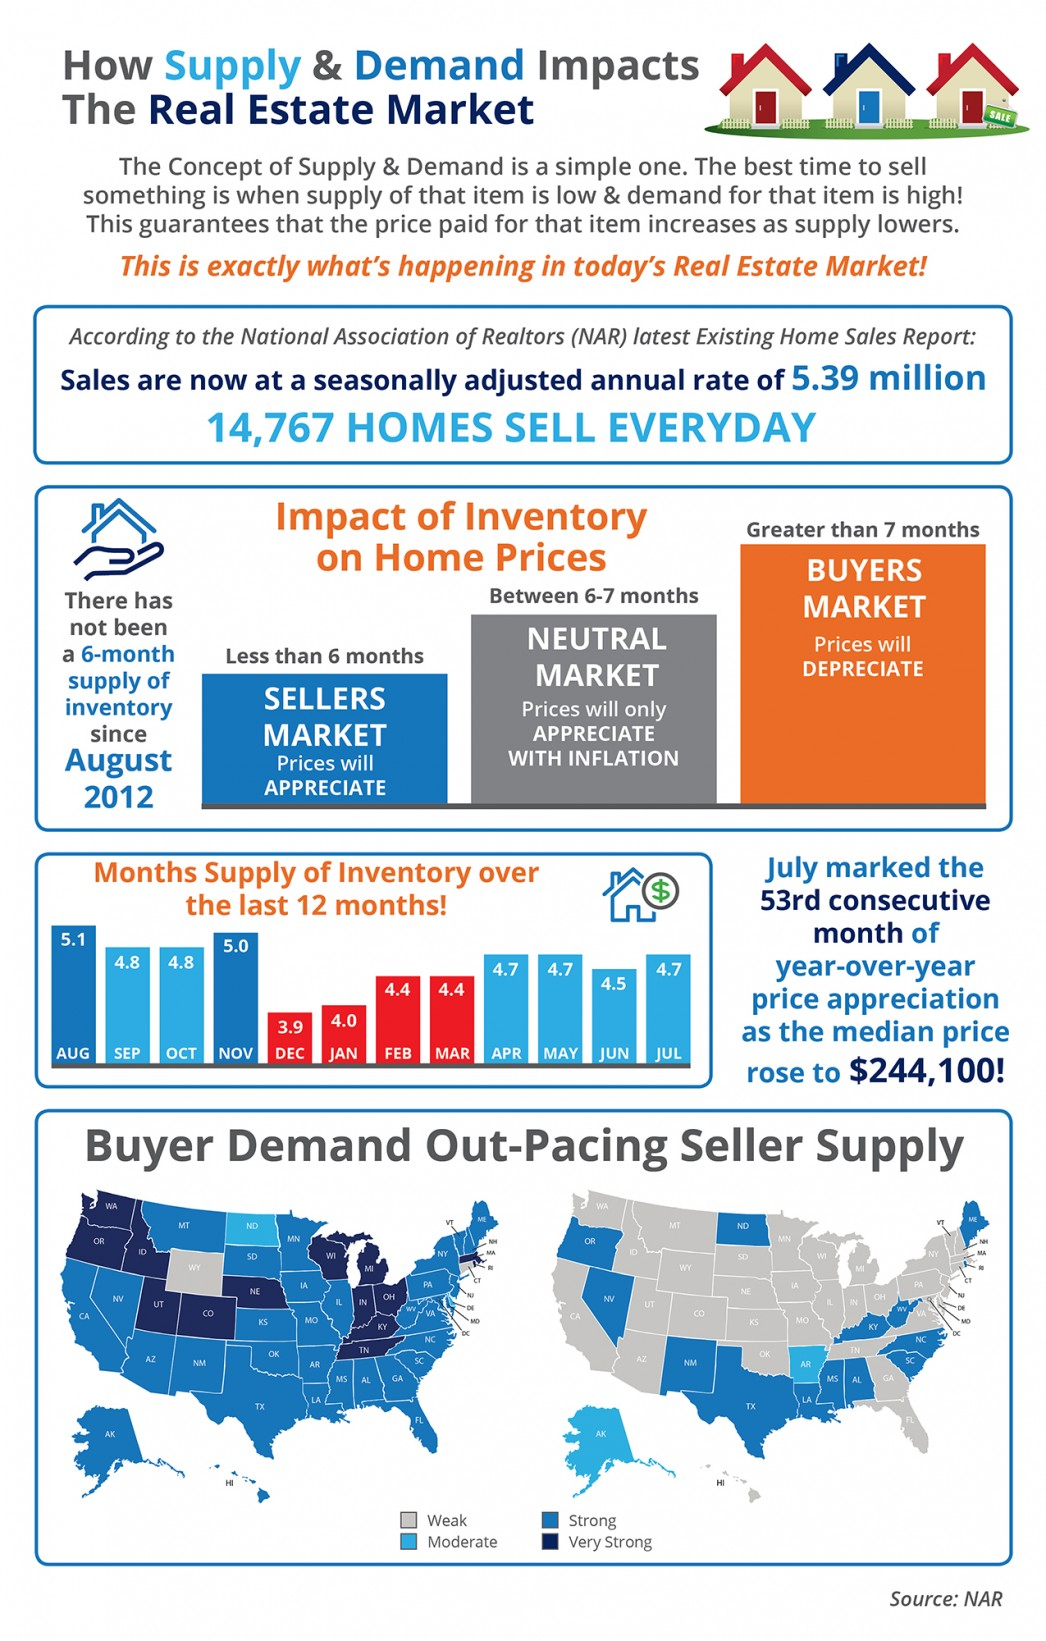 How supply and demand impacts real estate values